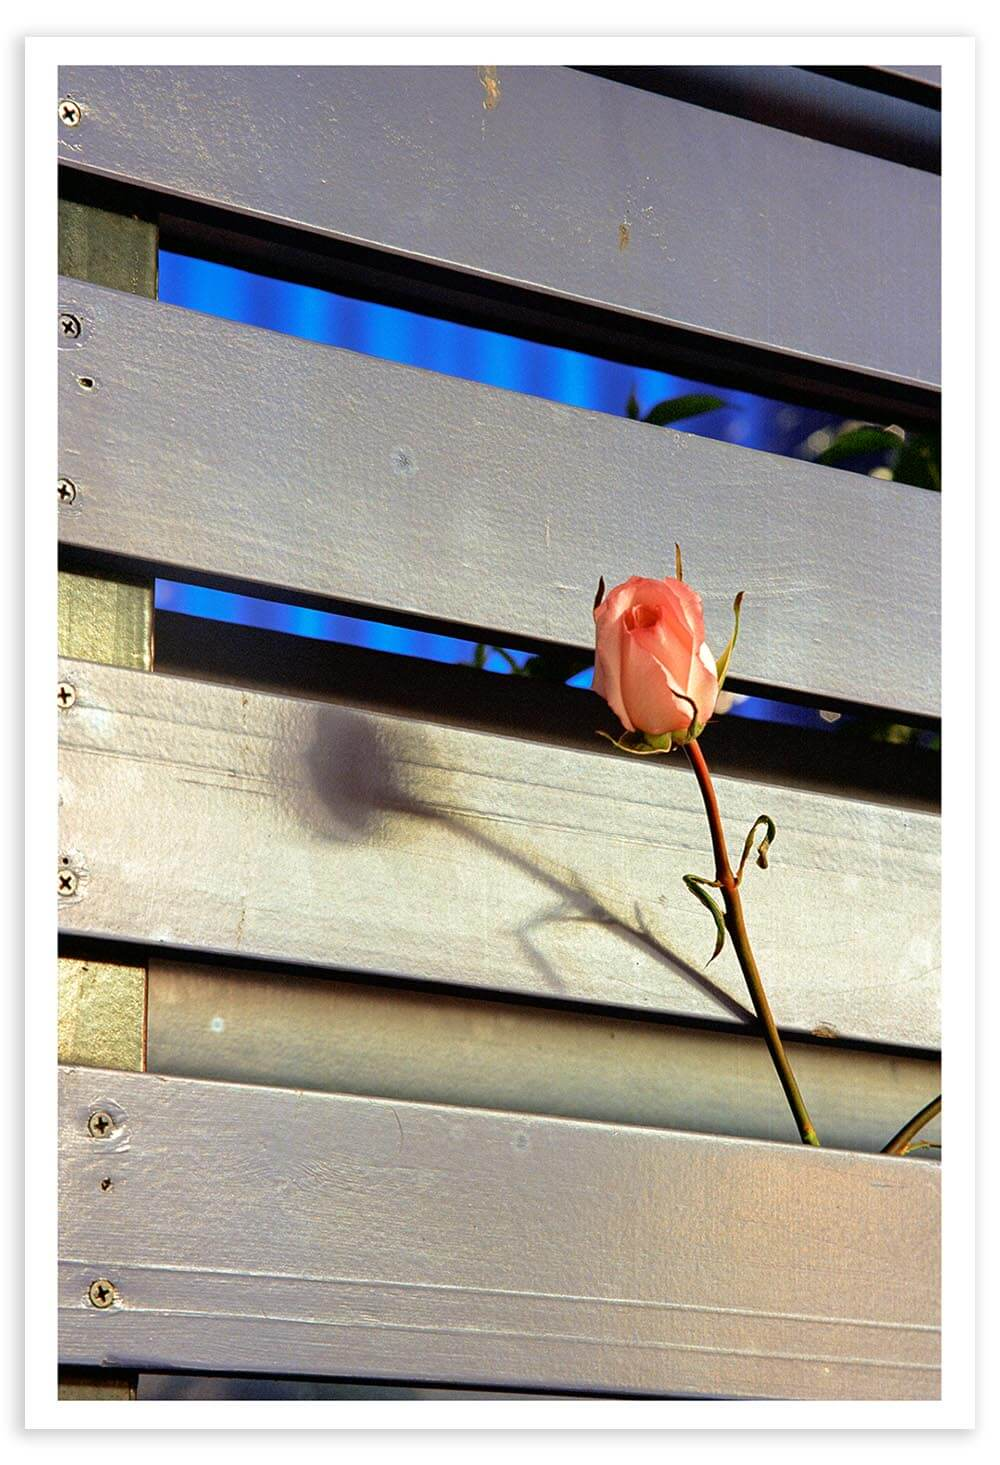 I remember feeling disgusted when I visited Ground Zero on Sept. 11, 2004. Throngs of tourists were taking smiling-selfies in front of the Tribute in Lights. I escaped the crowds and found this solitary rose: fitting for a young grave.